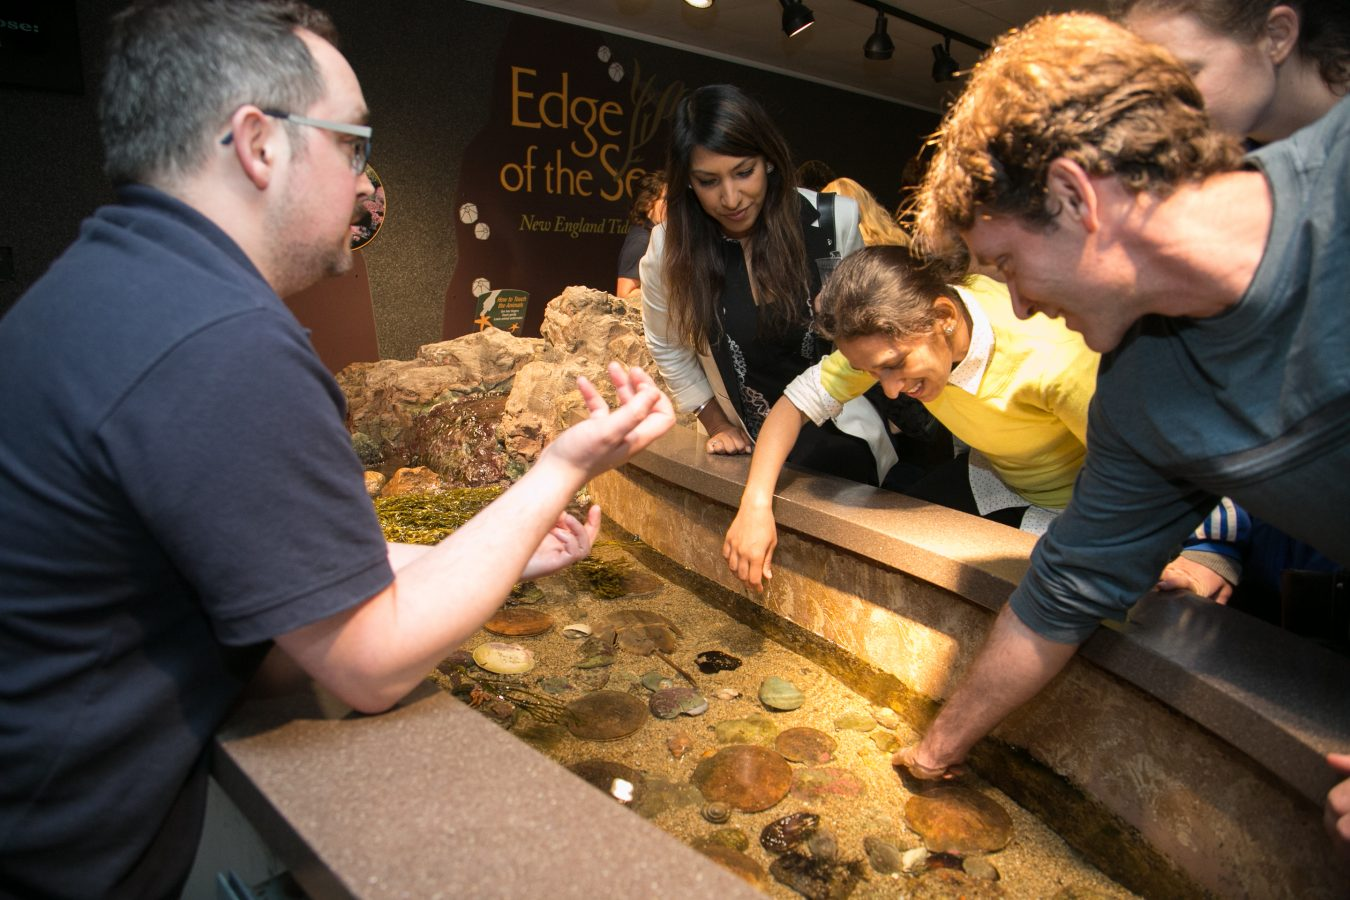 Members of The Tide get their hands wet in the Edge of the Sea Touch Tank